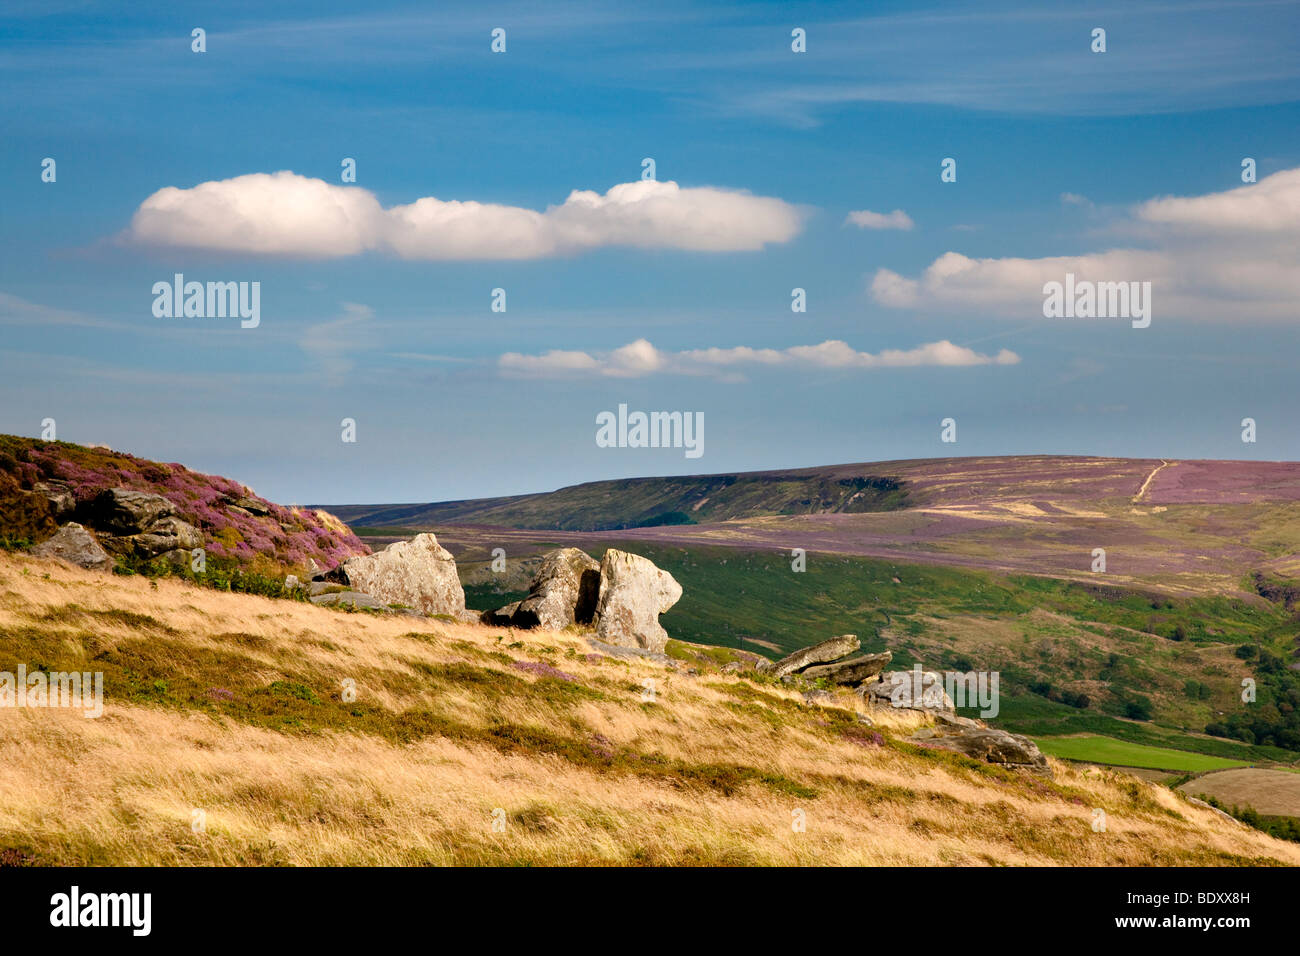 Urra moor from Hasty Bank on the Cleveland Way, North York Moors National Park - Stock Image